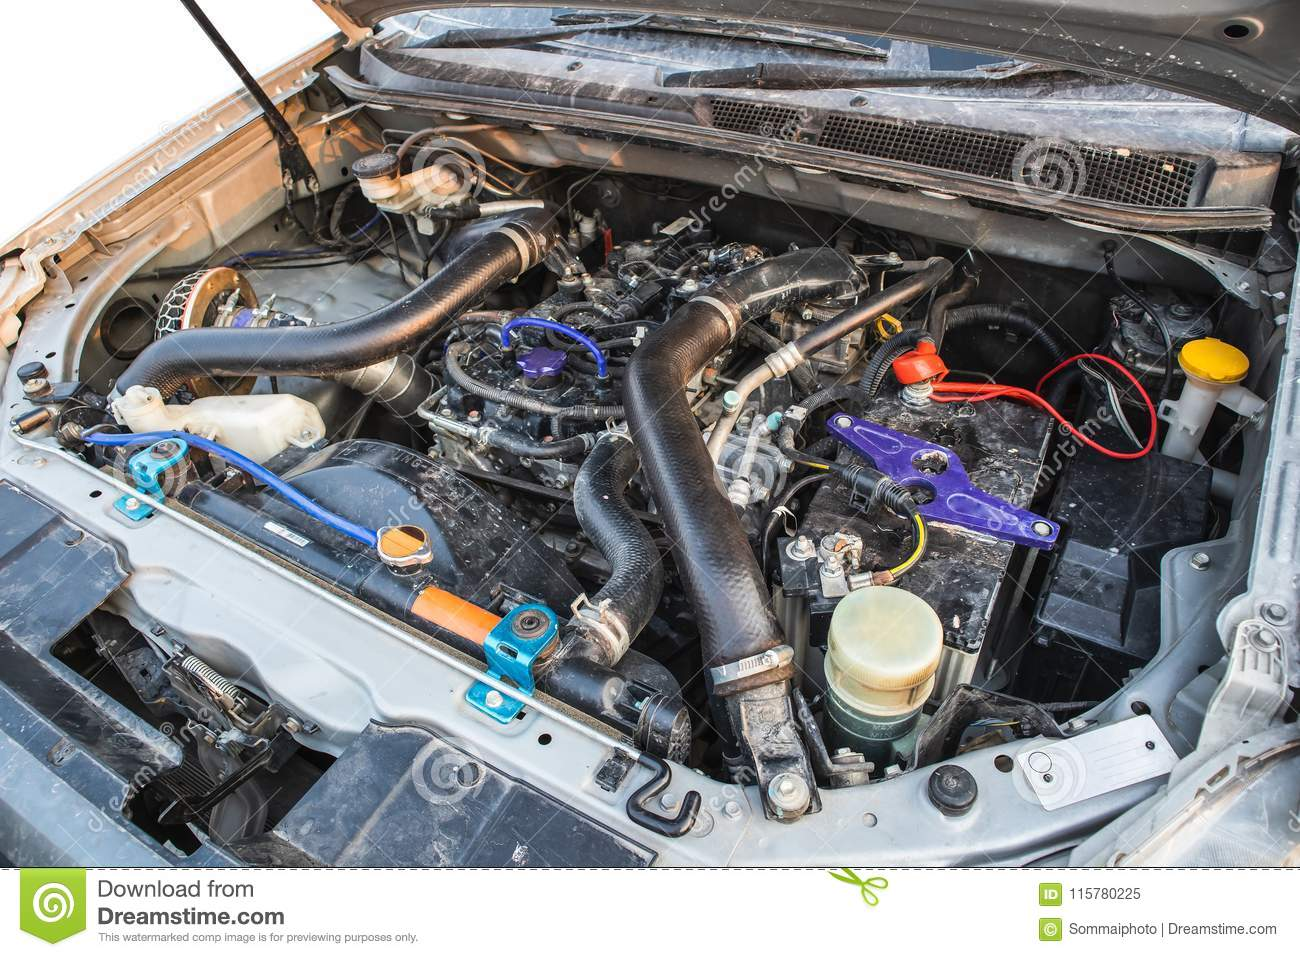 Litre Diesel Diesel Engine 2 5 Litre Under The Hood Of Pickup Truck Stock Image